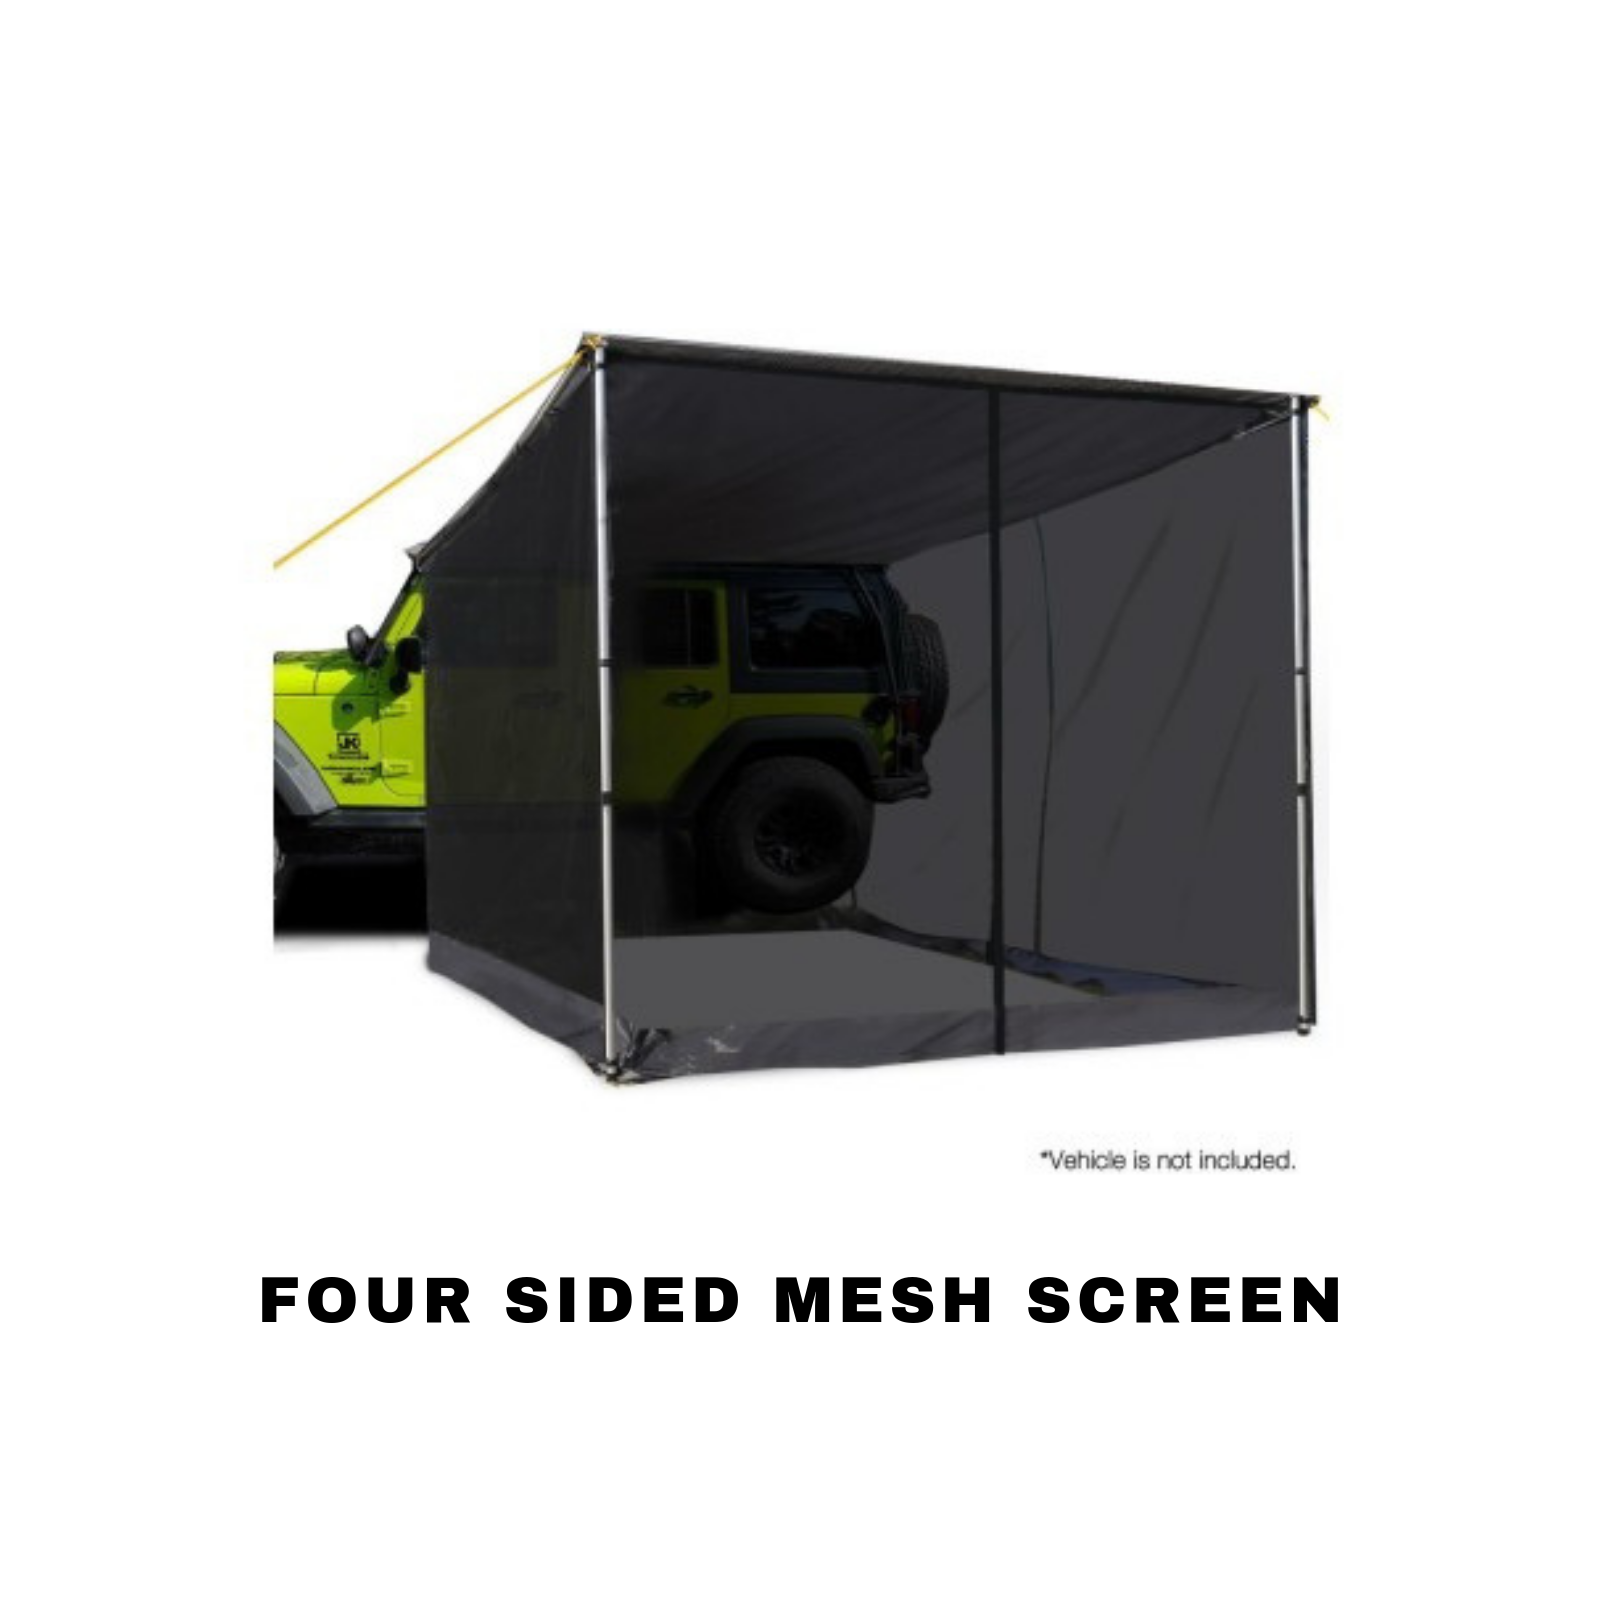 4Wd Awning Tent details about car shade awning fly screen mesh top side 4wd 4x4 suv roof  tent net 2.5m x 3m